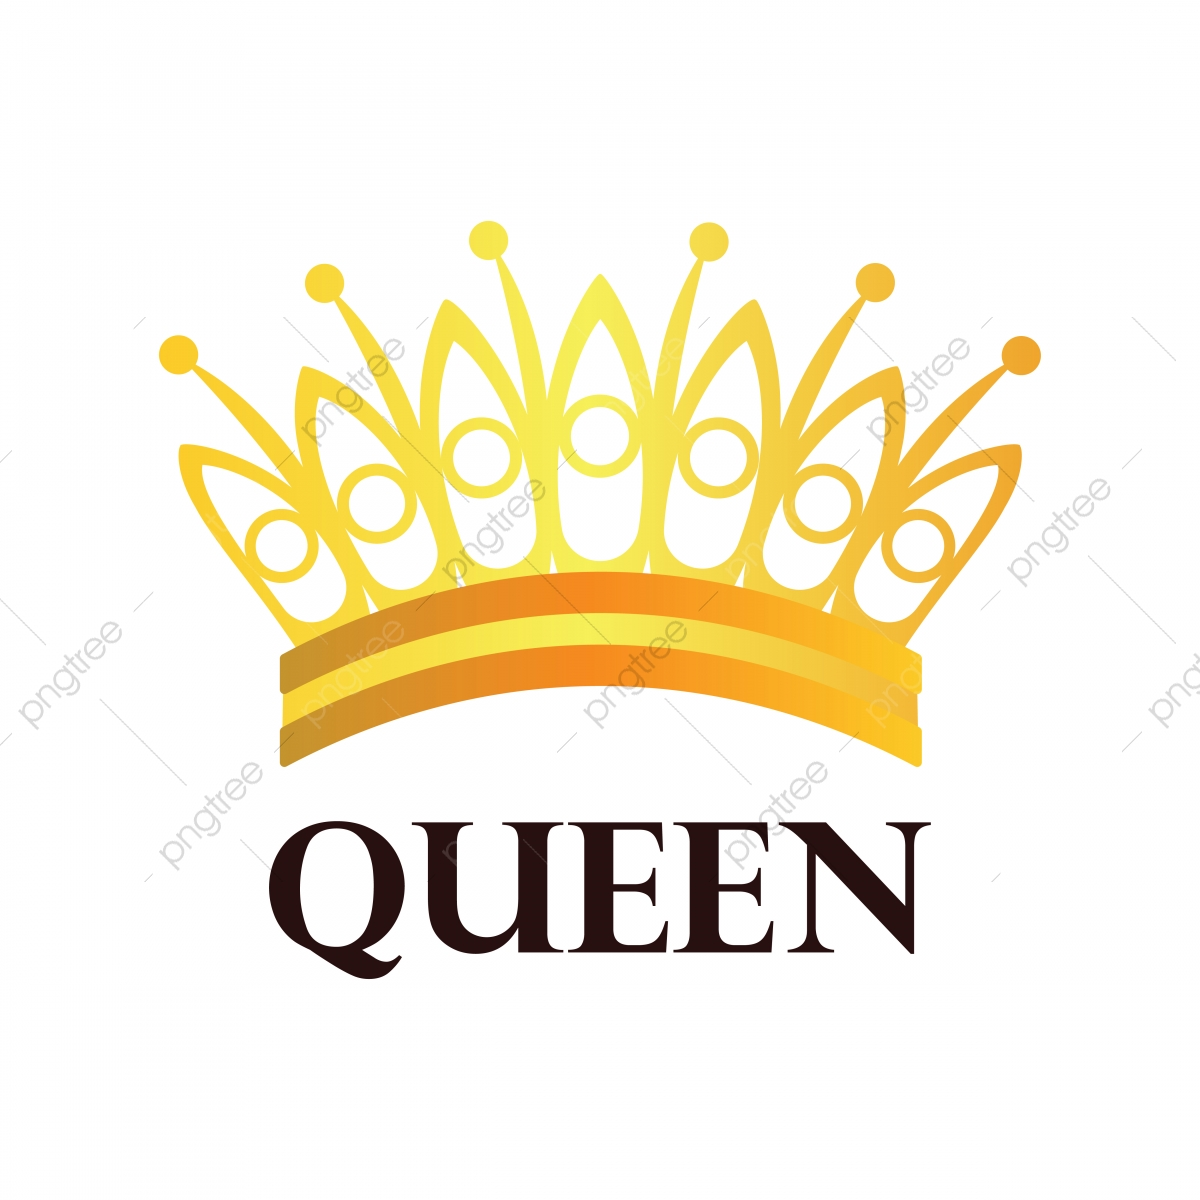 Queen Crown Png Images Vector And Psd Files Free Download On Pngtree